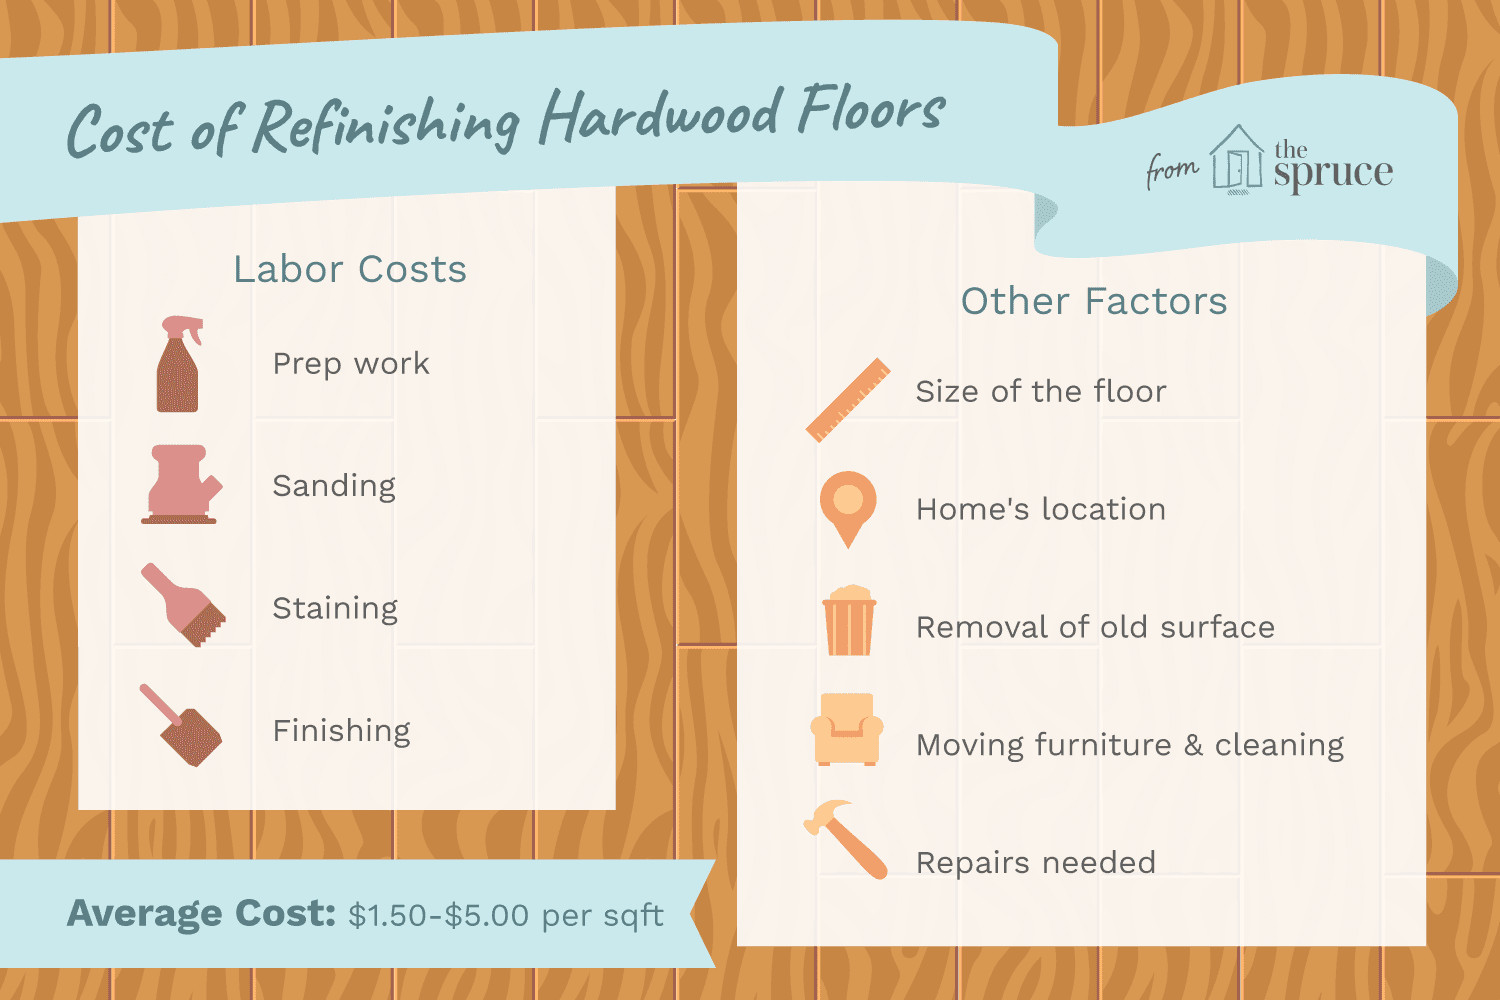 hardwood floor sanding companies of the cost to refinish hardwood floors throughout cost to refinish hardwood floors 1314853 final 5bb6259346e0fb0026825ce2